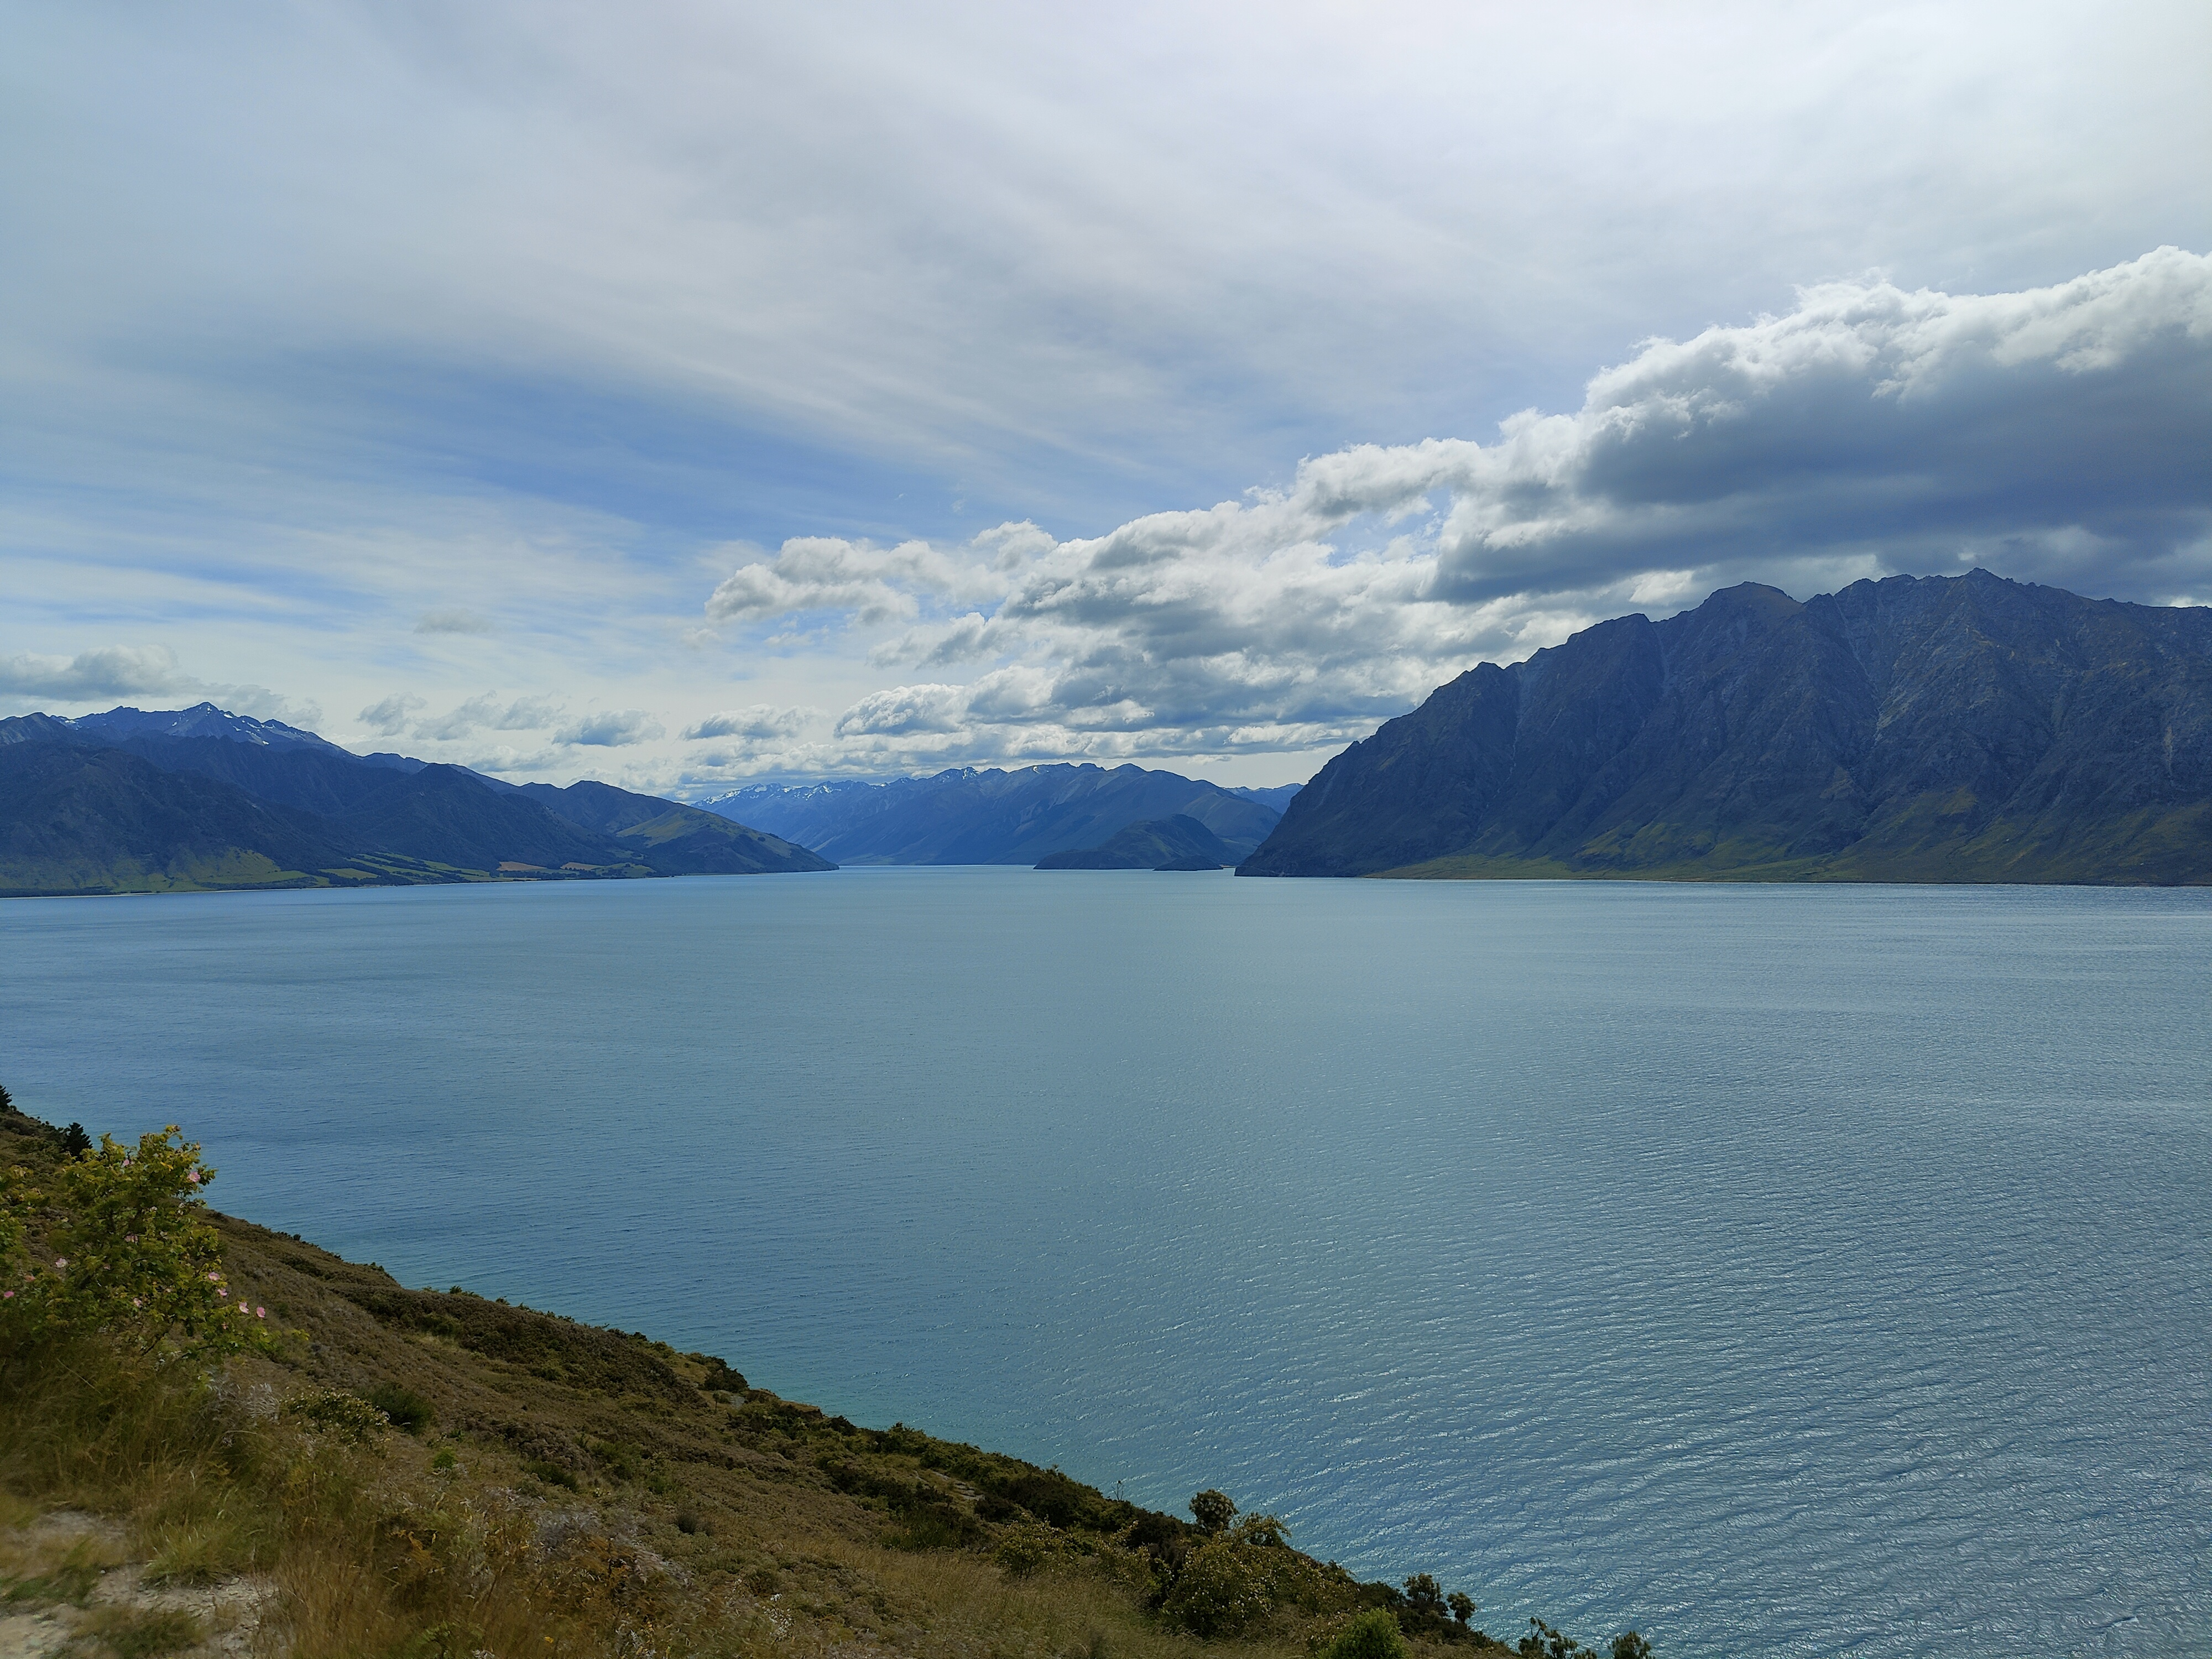 Lake Hawea stretches into the distance